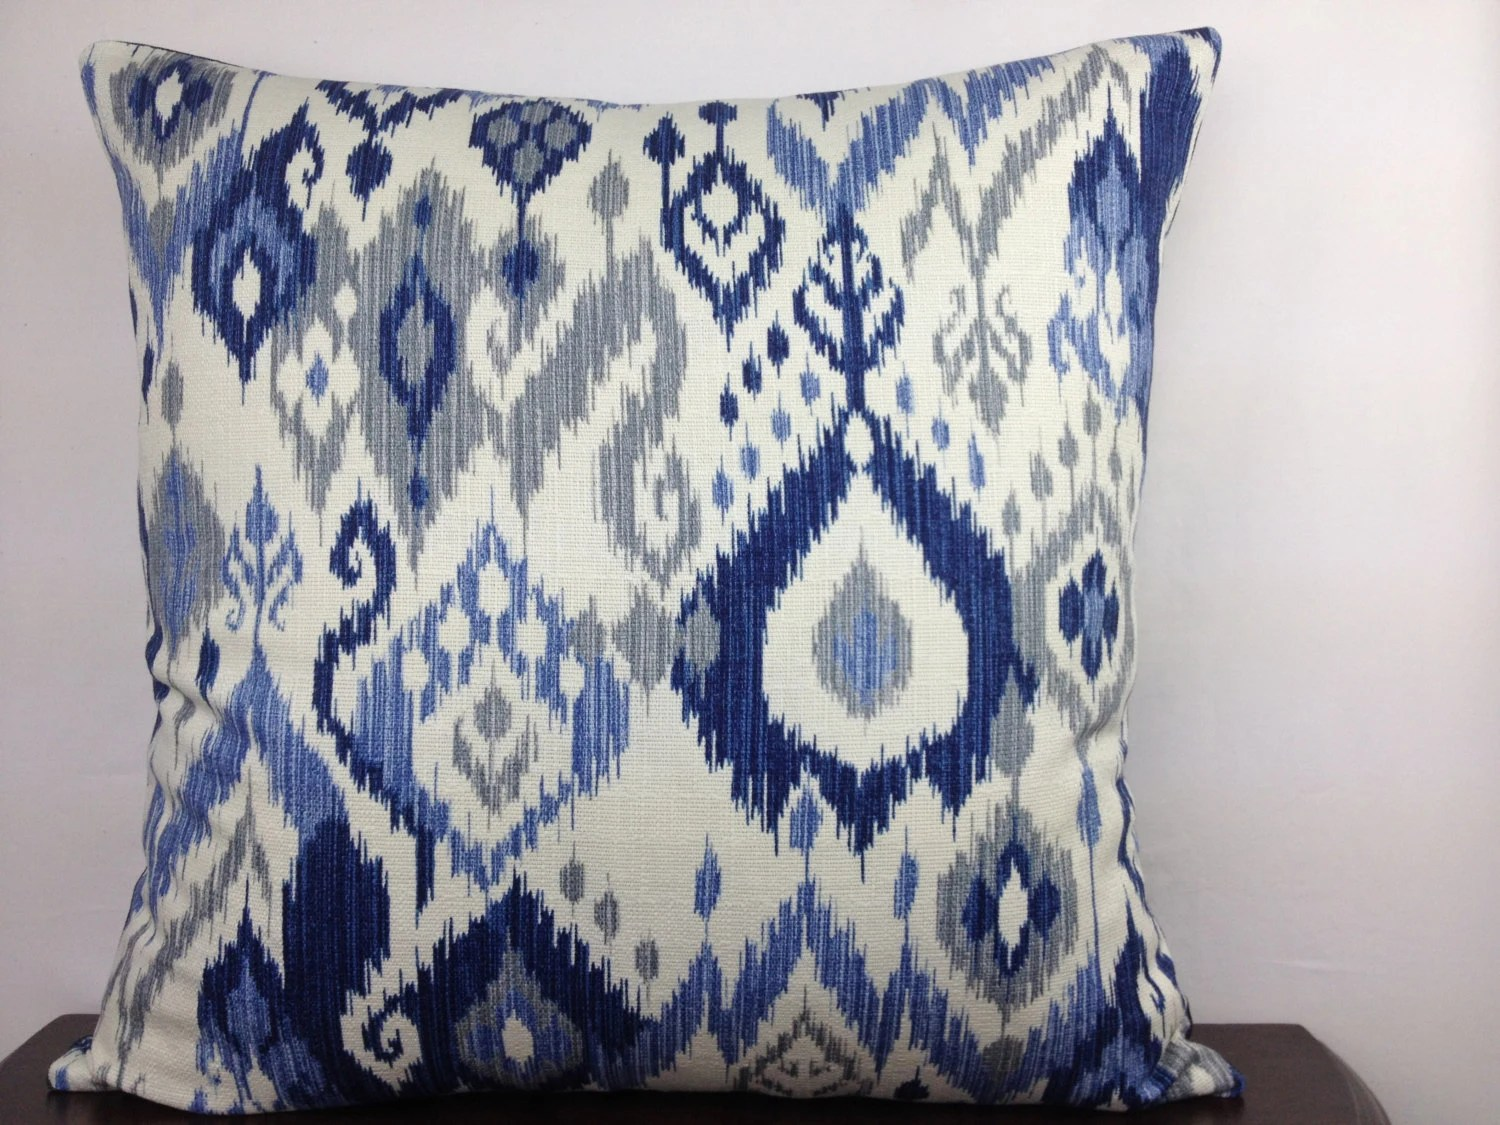 Blue Ikat Pillow Cover 20x20 Off White Blue and Gray Ikat